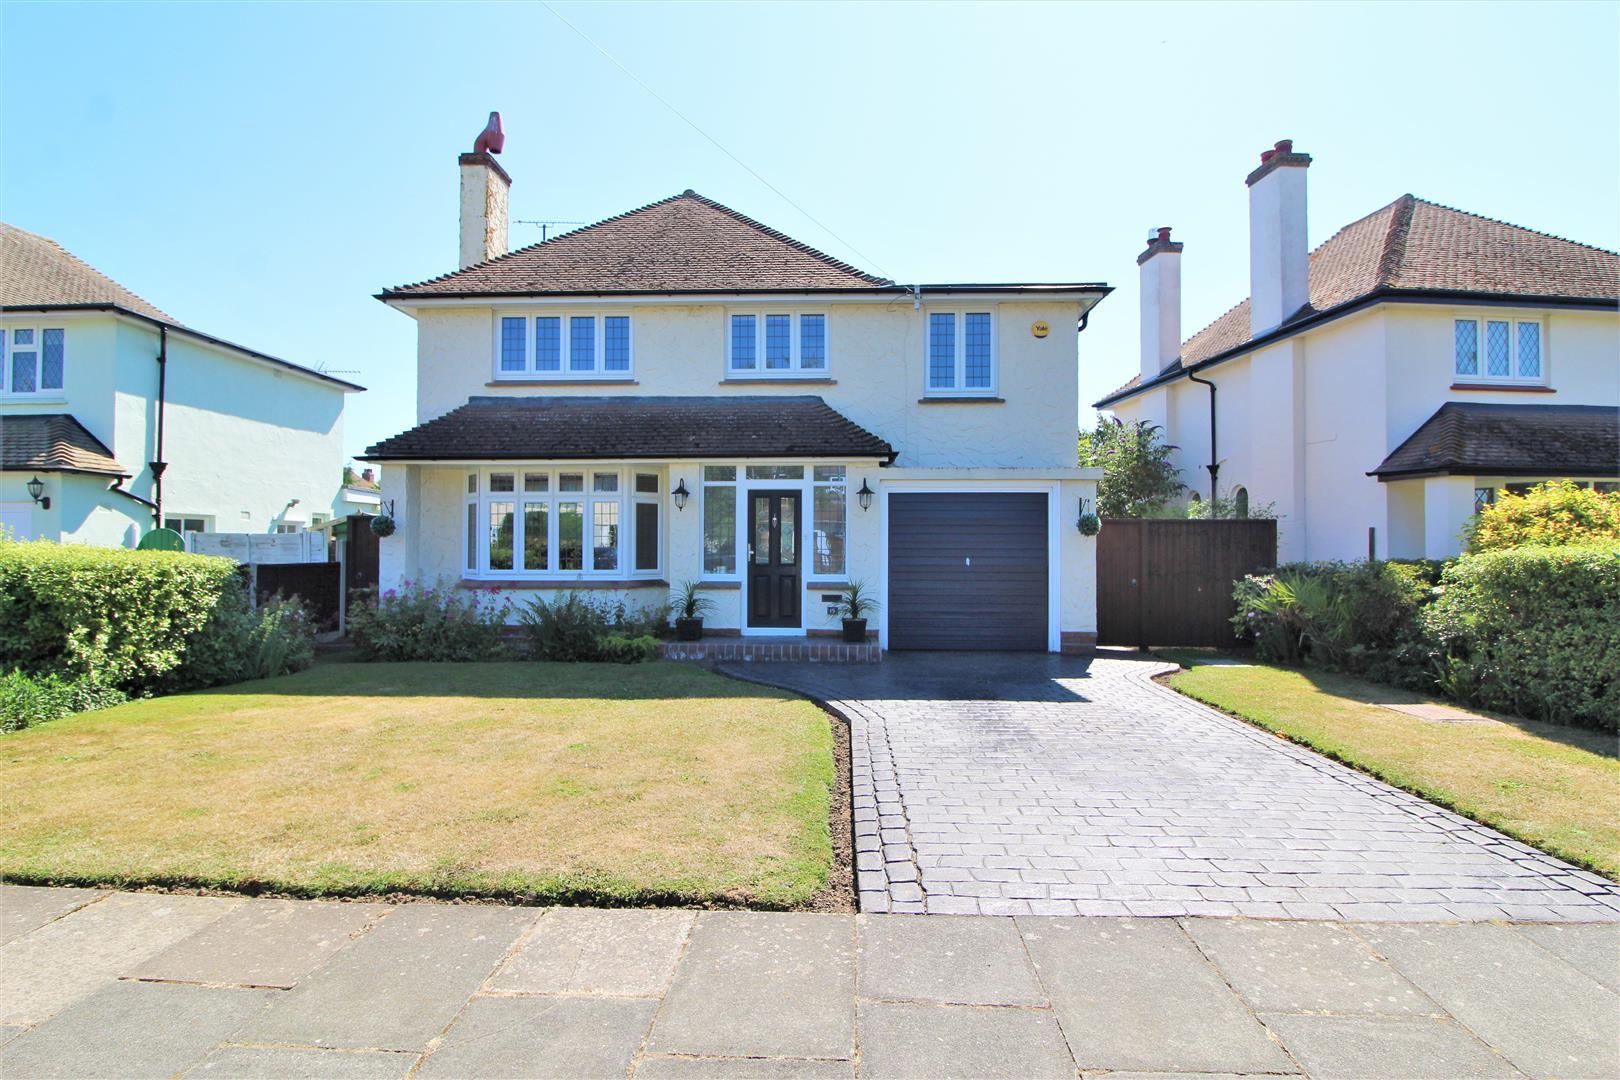 Eton Road, Frinton-On-Sea, Essex, CO13 9JA